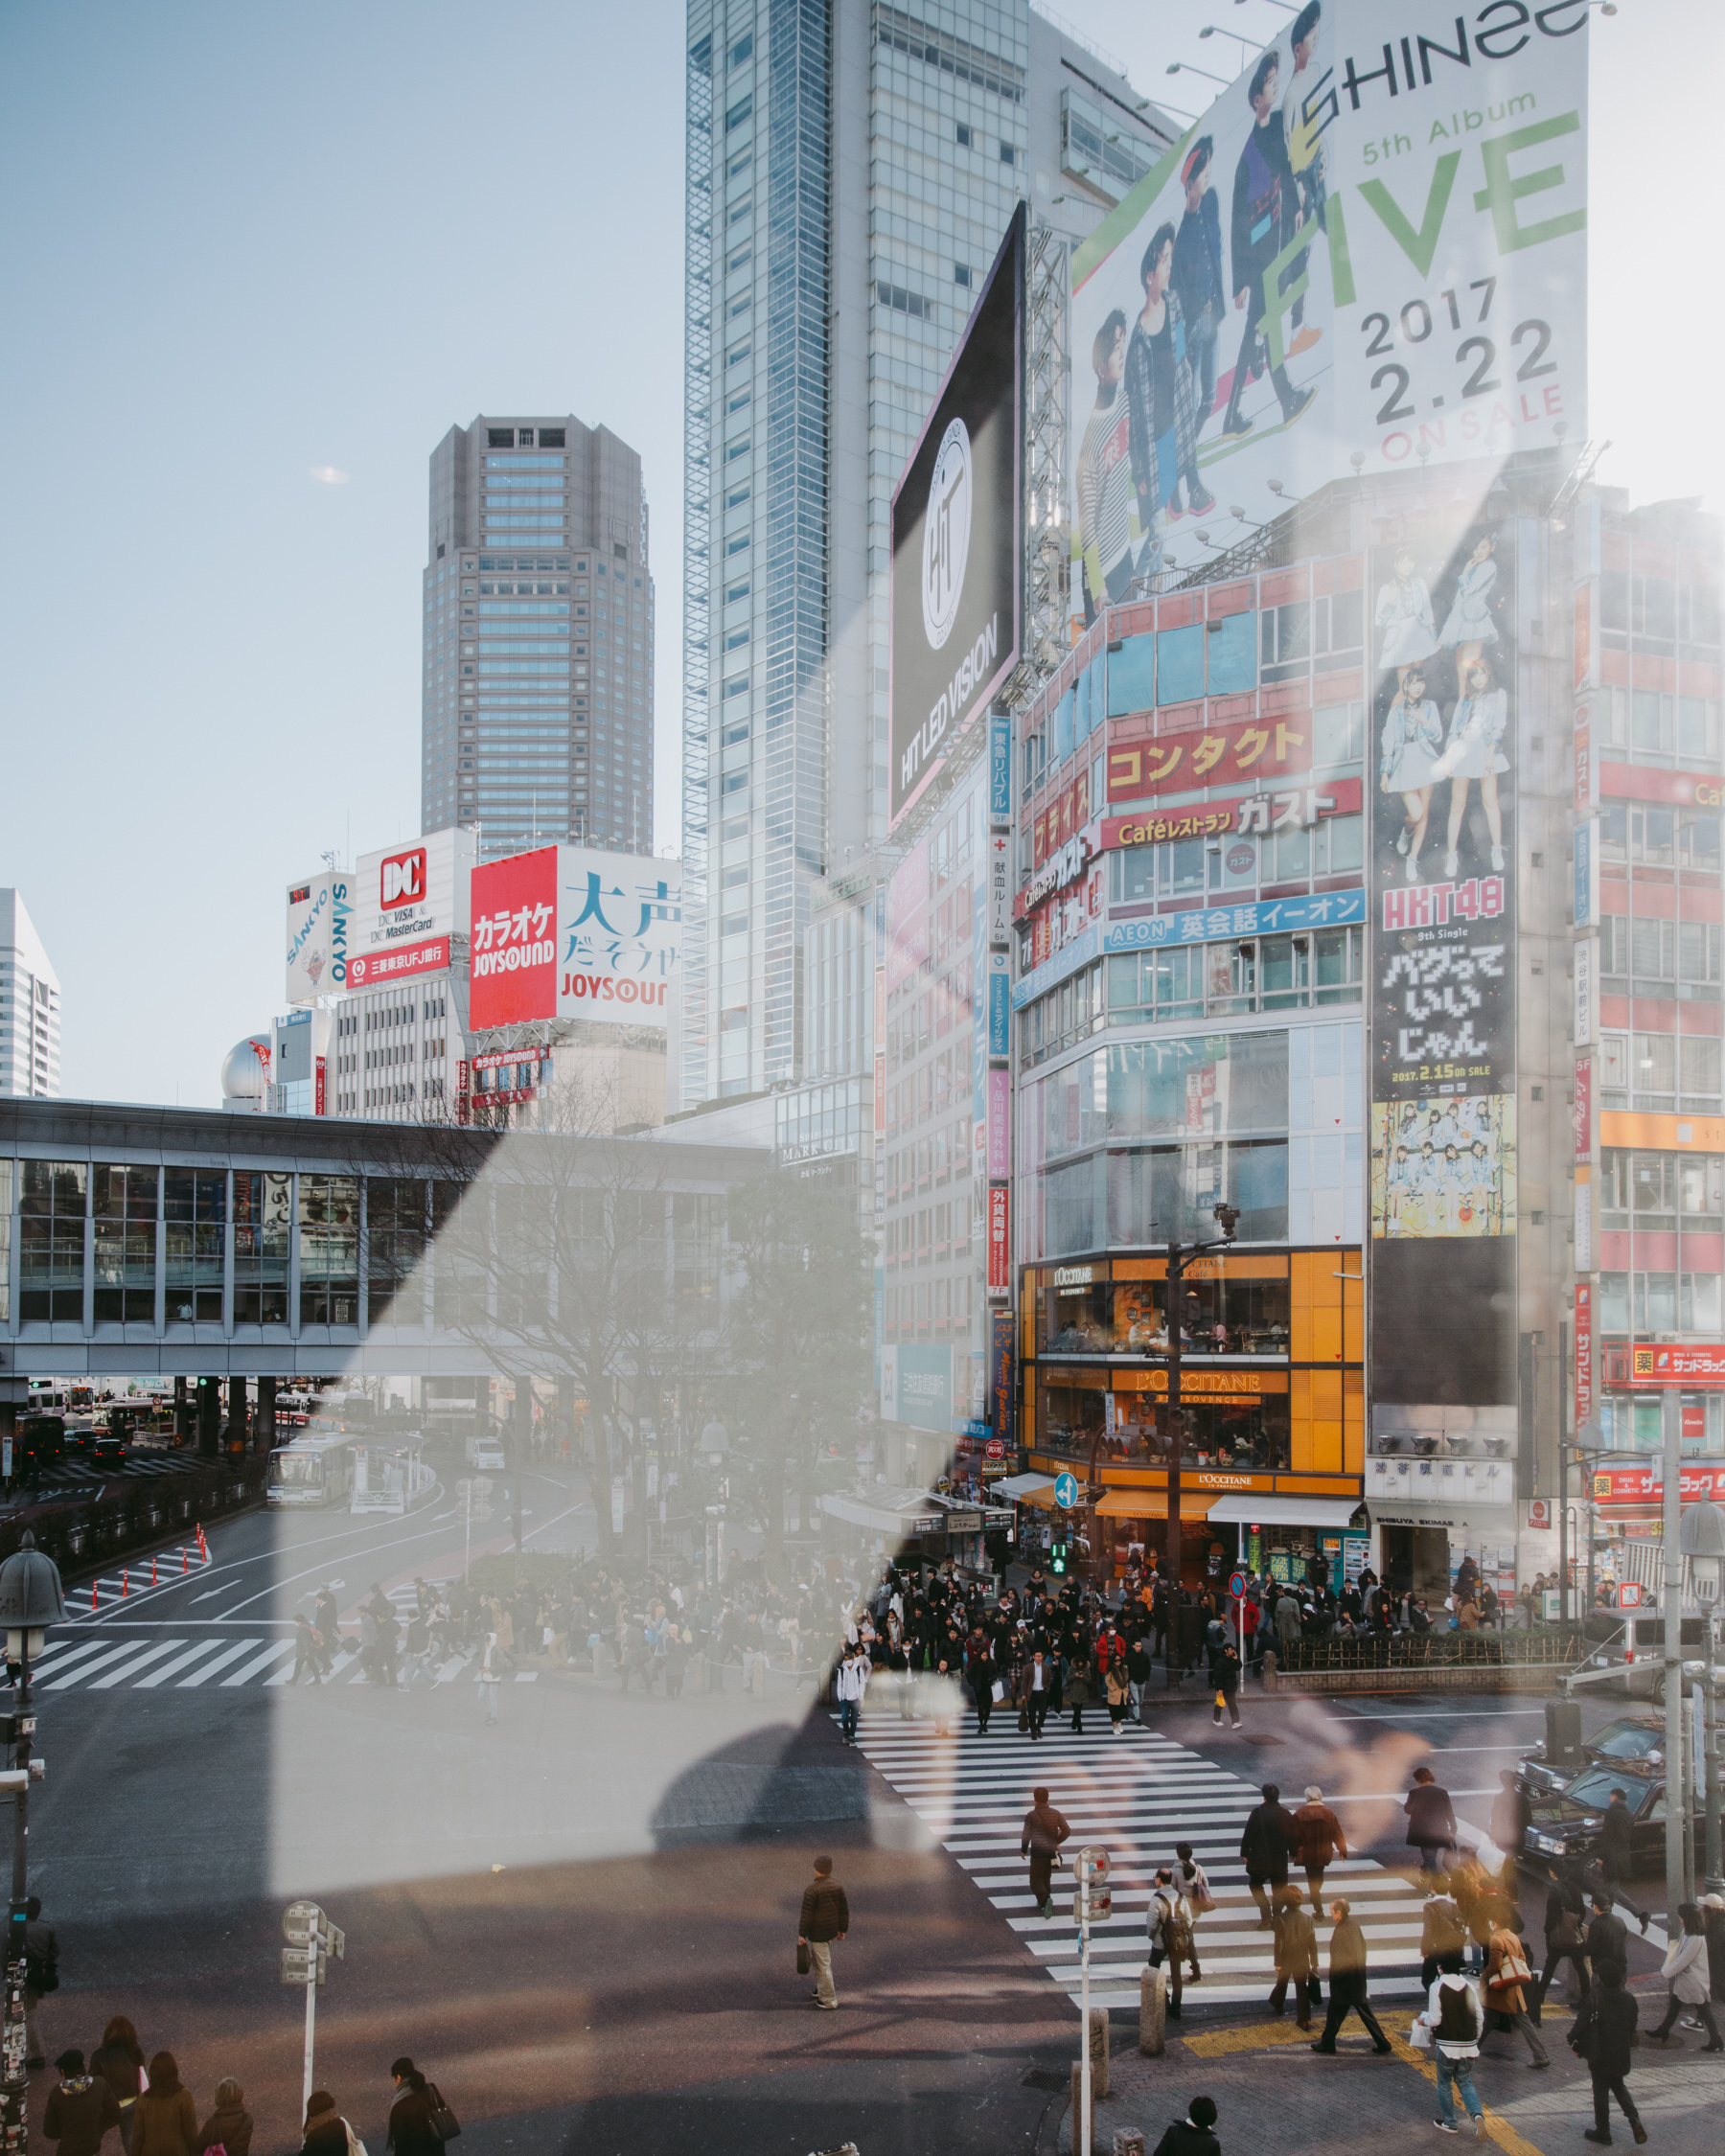 MikeSeehagel-commercial-lifestyle-travel-photography-Japan-13.jpg